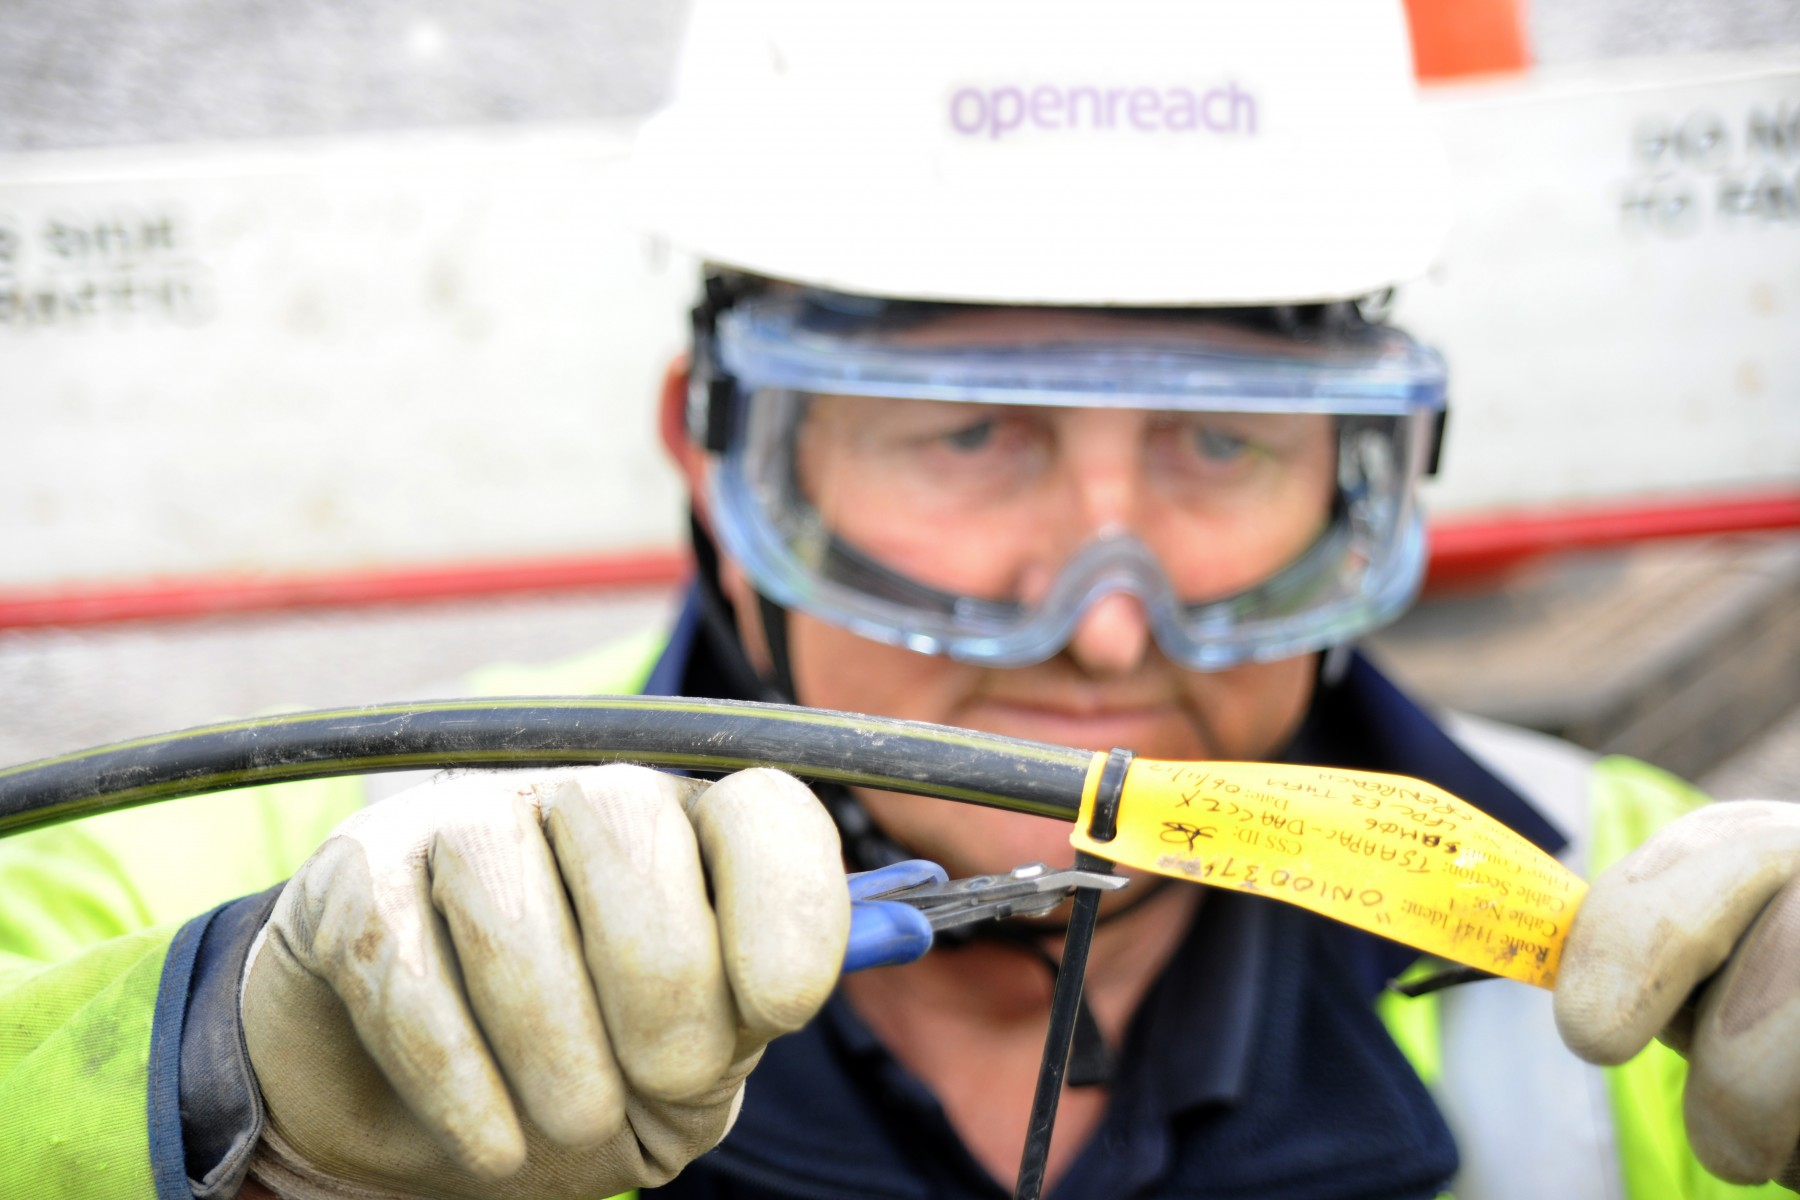 Openreach at work